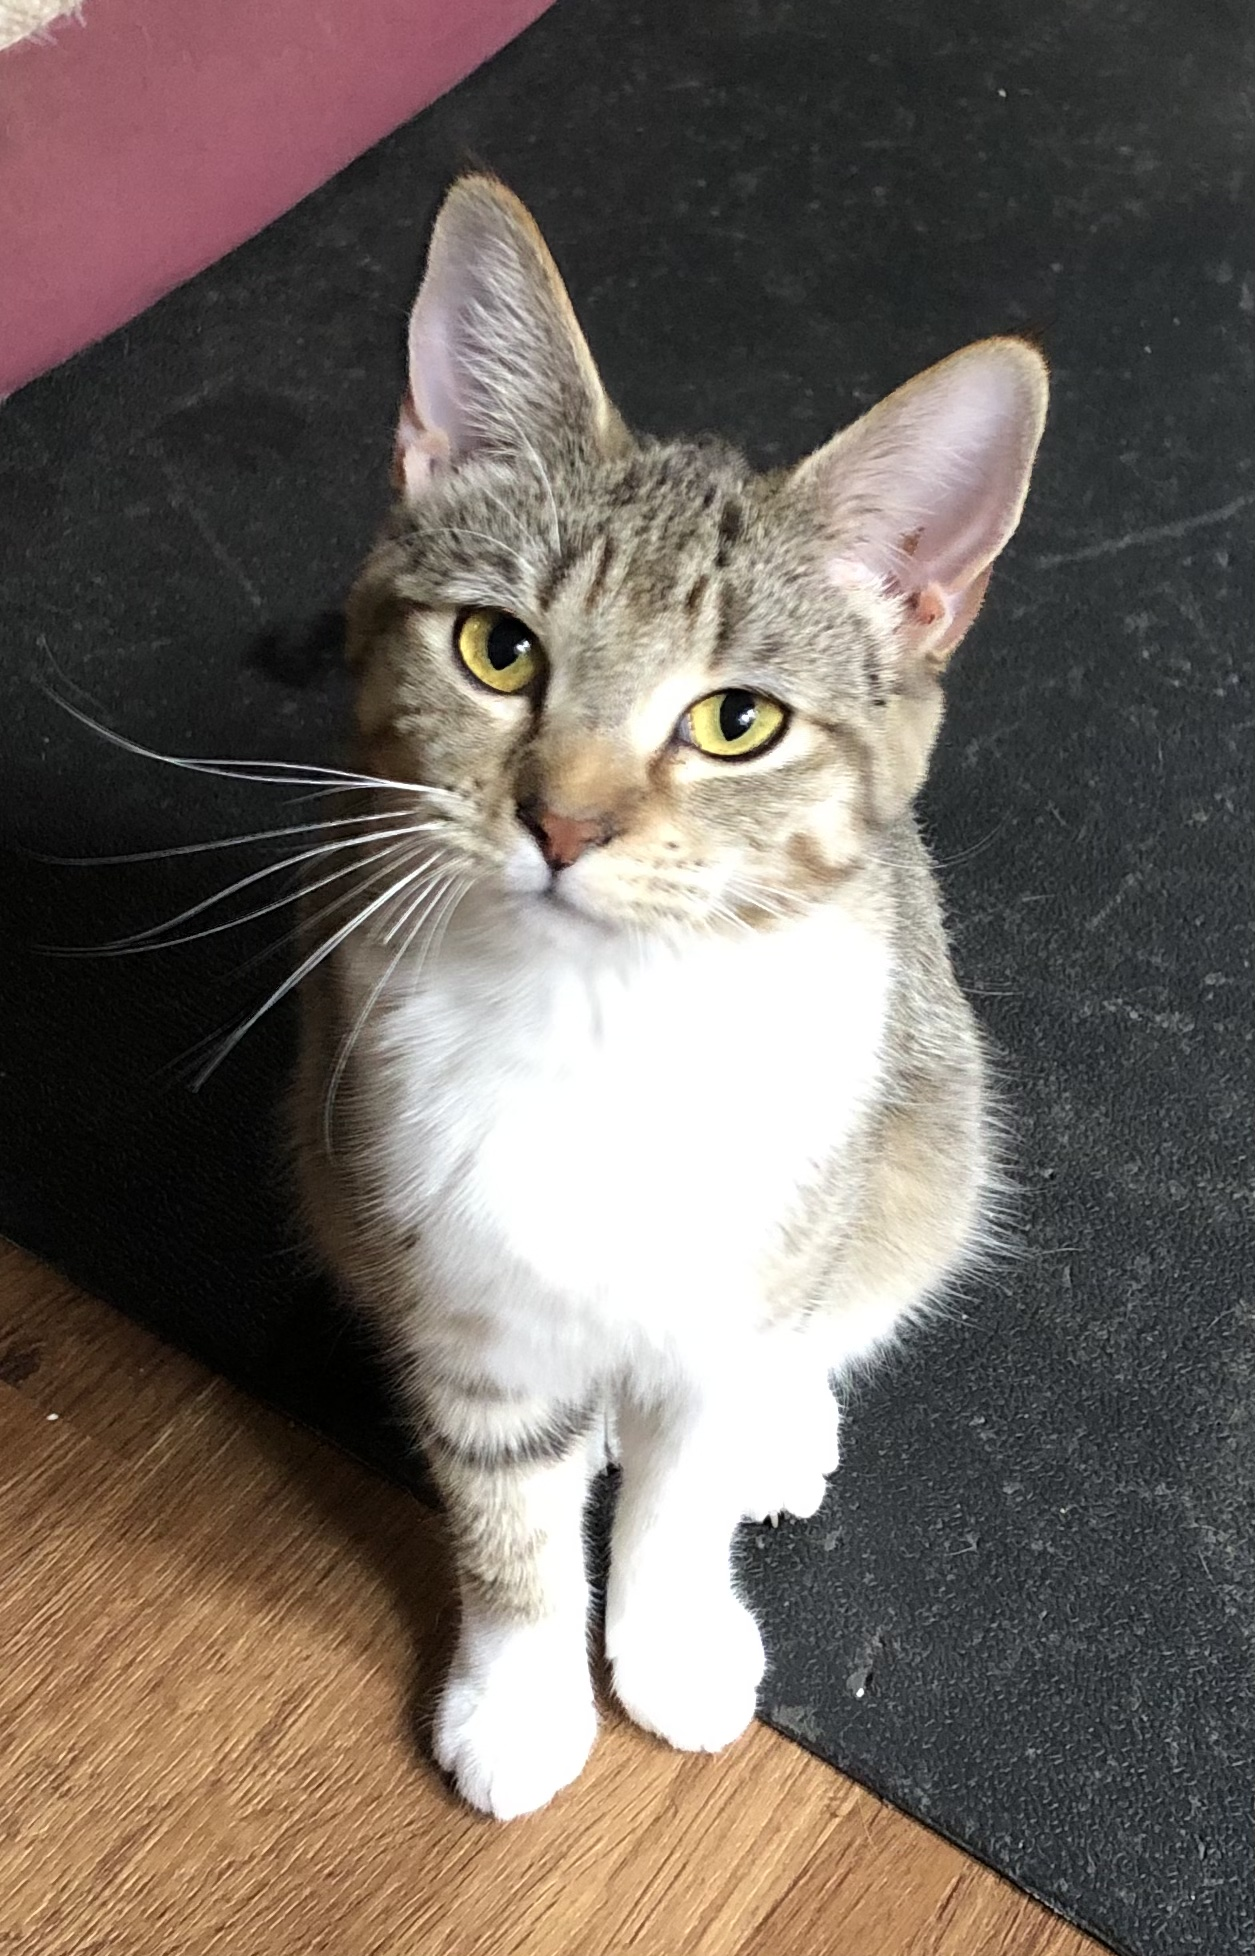 adoptable Cat in Laramie, WY named Sox